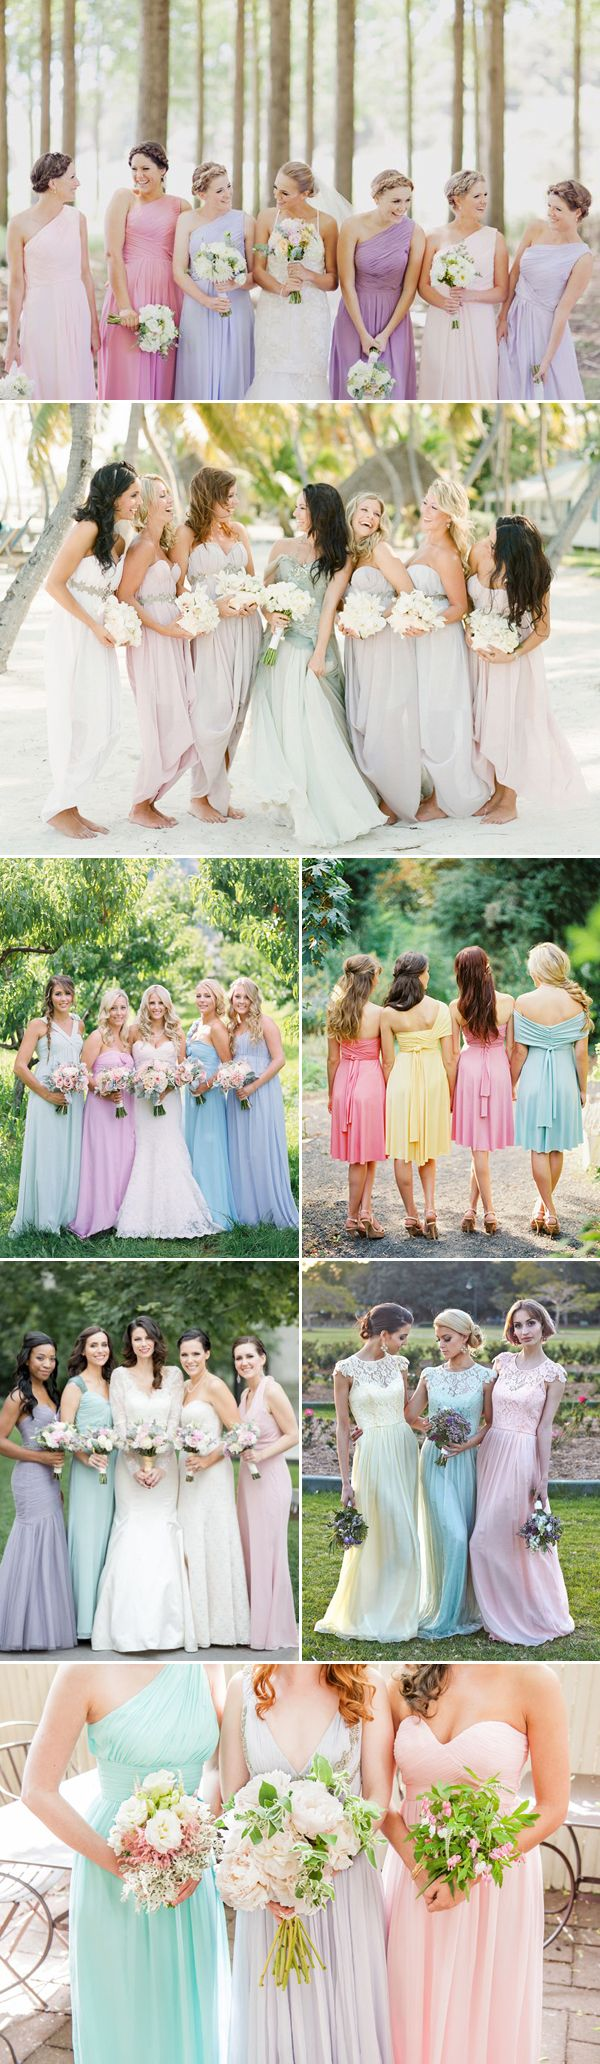 Bridesmaid fashion plays a key role in the overall look and feel of your wedding, and luckily, there are plenty of stylish looks for your girls to choose from this season! Show off your bridal party's personalities and styles by choosing something they would actually wear again. Here are the top five most loved bridesmaid …